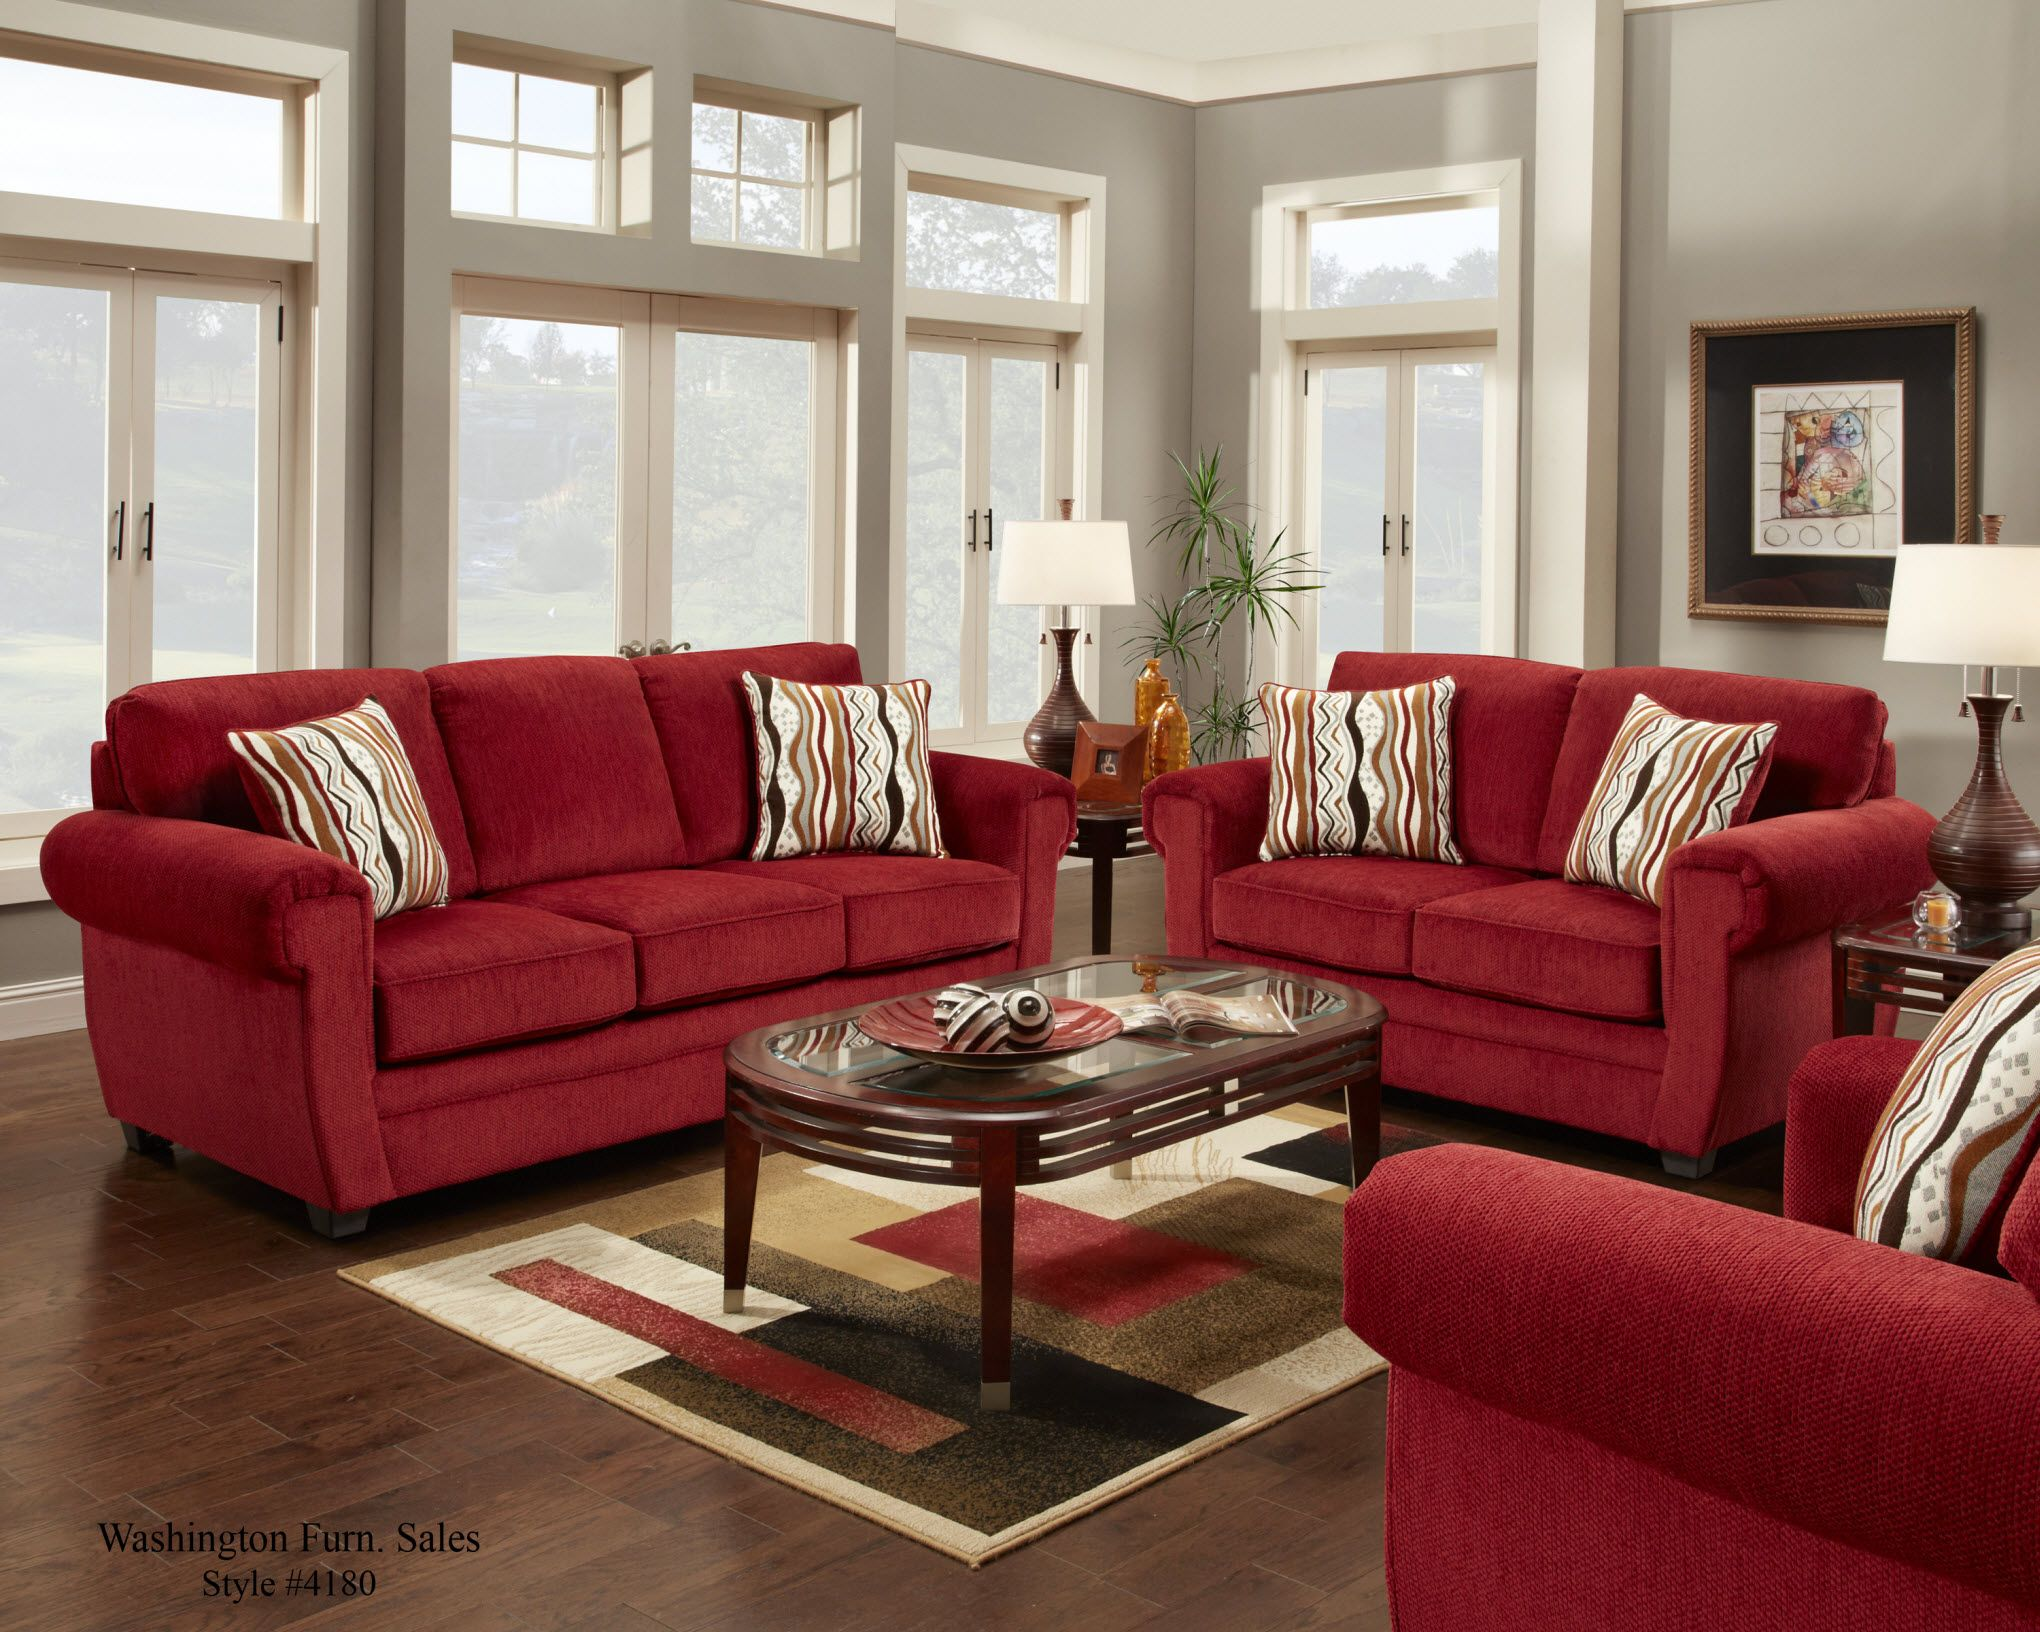 living room color with red sofa sectional connecting hardware 4180 washington samson and loveseat www